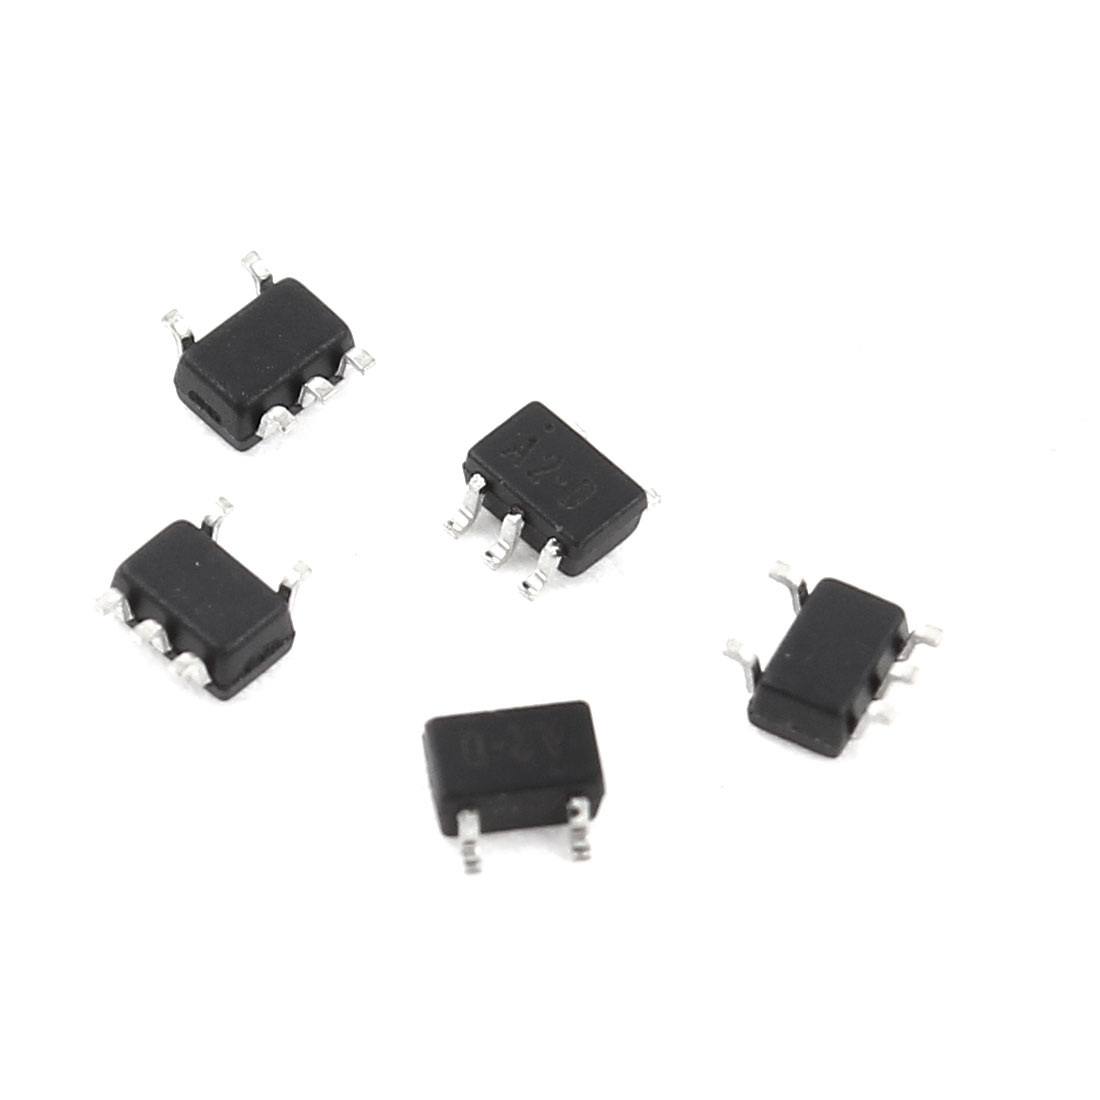 5 Pcs RT9193-18PU5 SOT-23 5Pin Ultra Fast CMOS Low Dropout Voltage Regulator